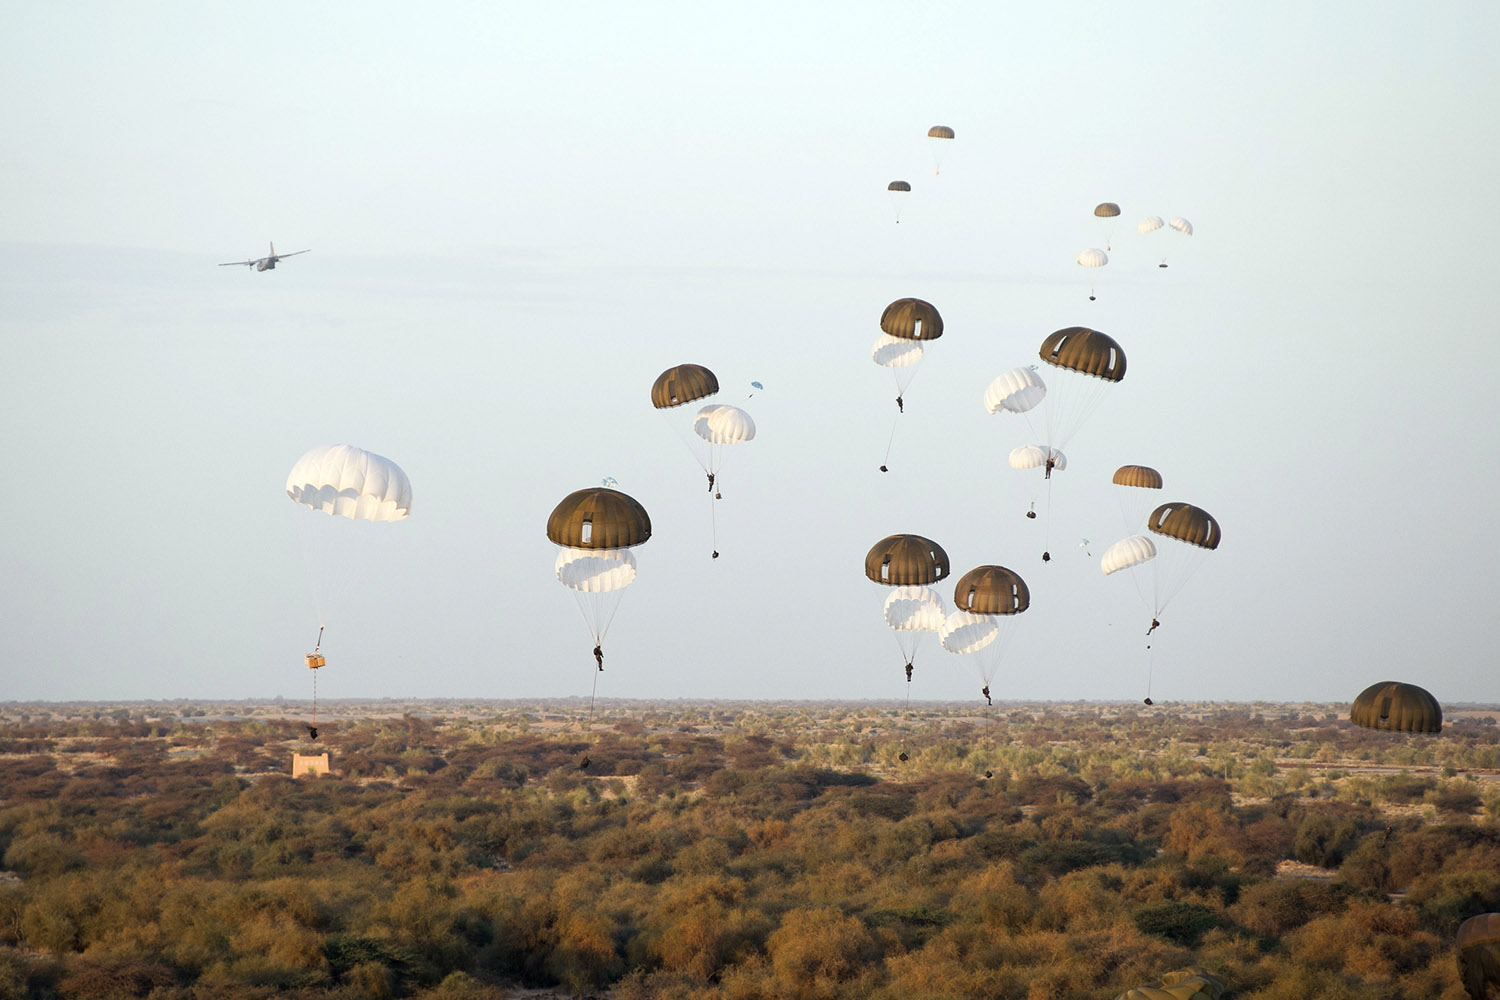 Jan. 29, 2013. In this photo provided by the French Army Communications Audiovisual office (ECPAD) on Feb. 1, 2013, French paratroopers drop from a plane over Timbuktu airport as part of the Operation Serval in Mali.